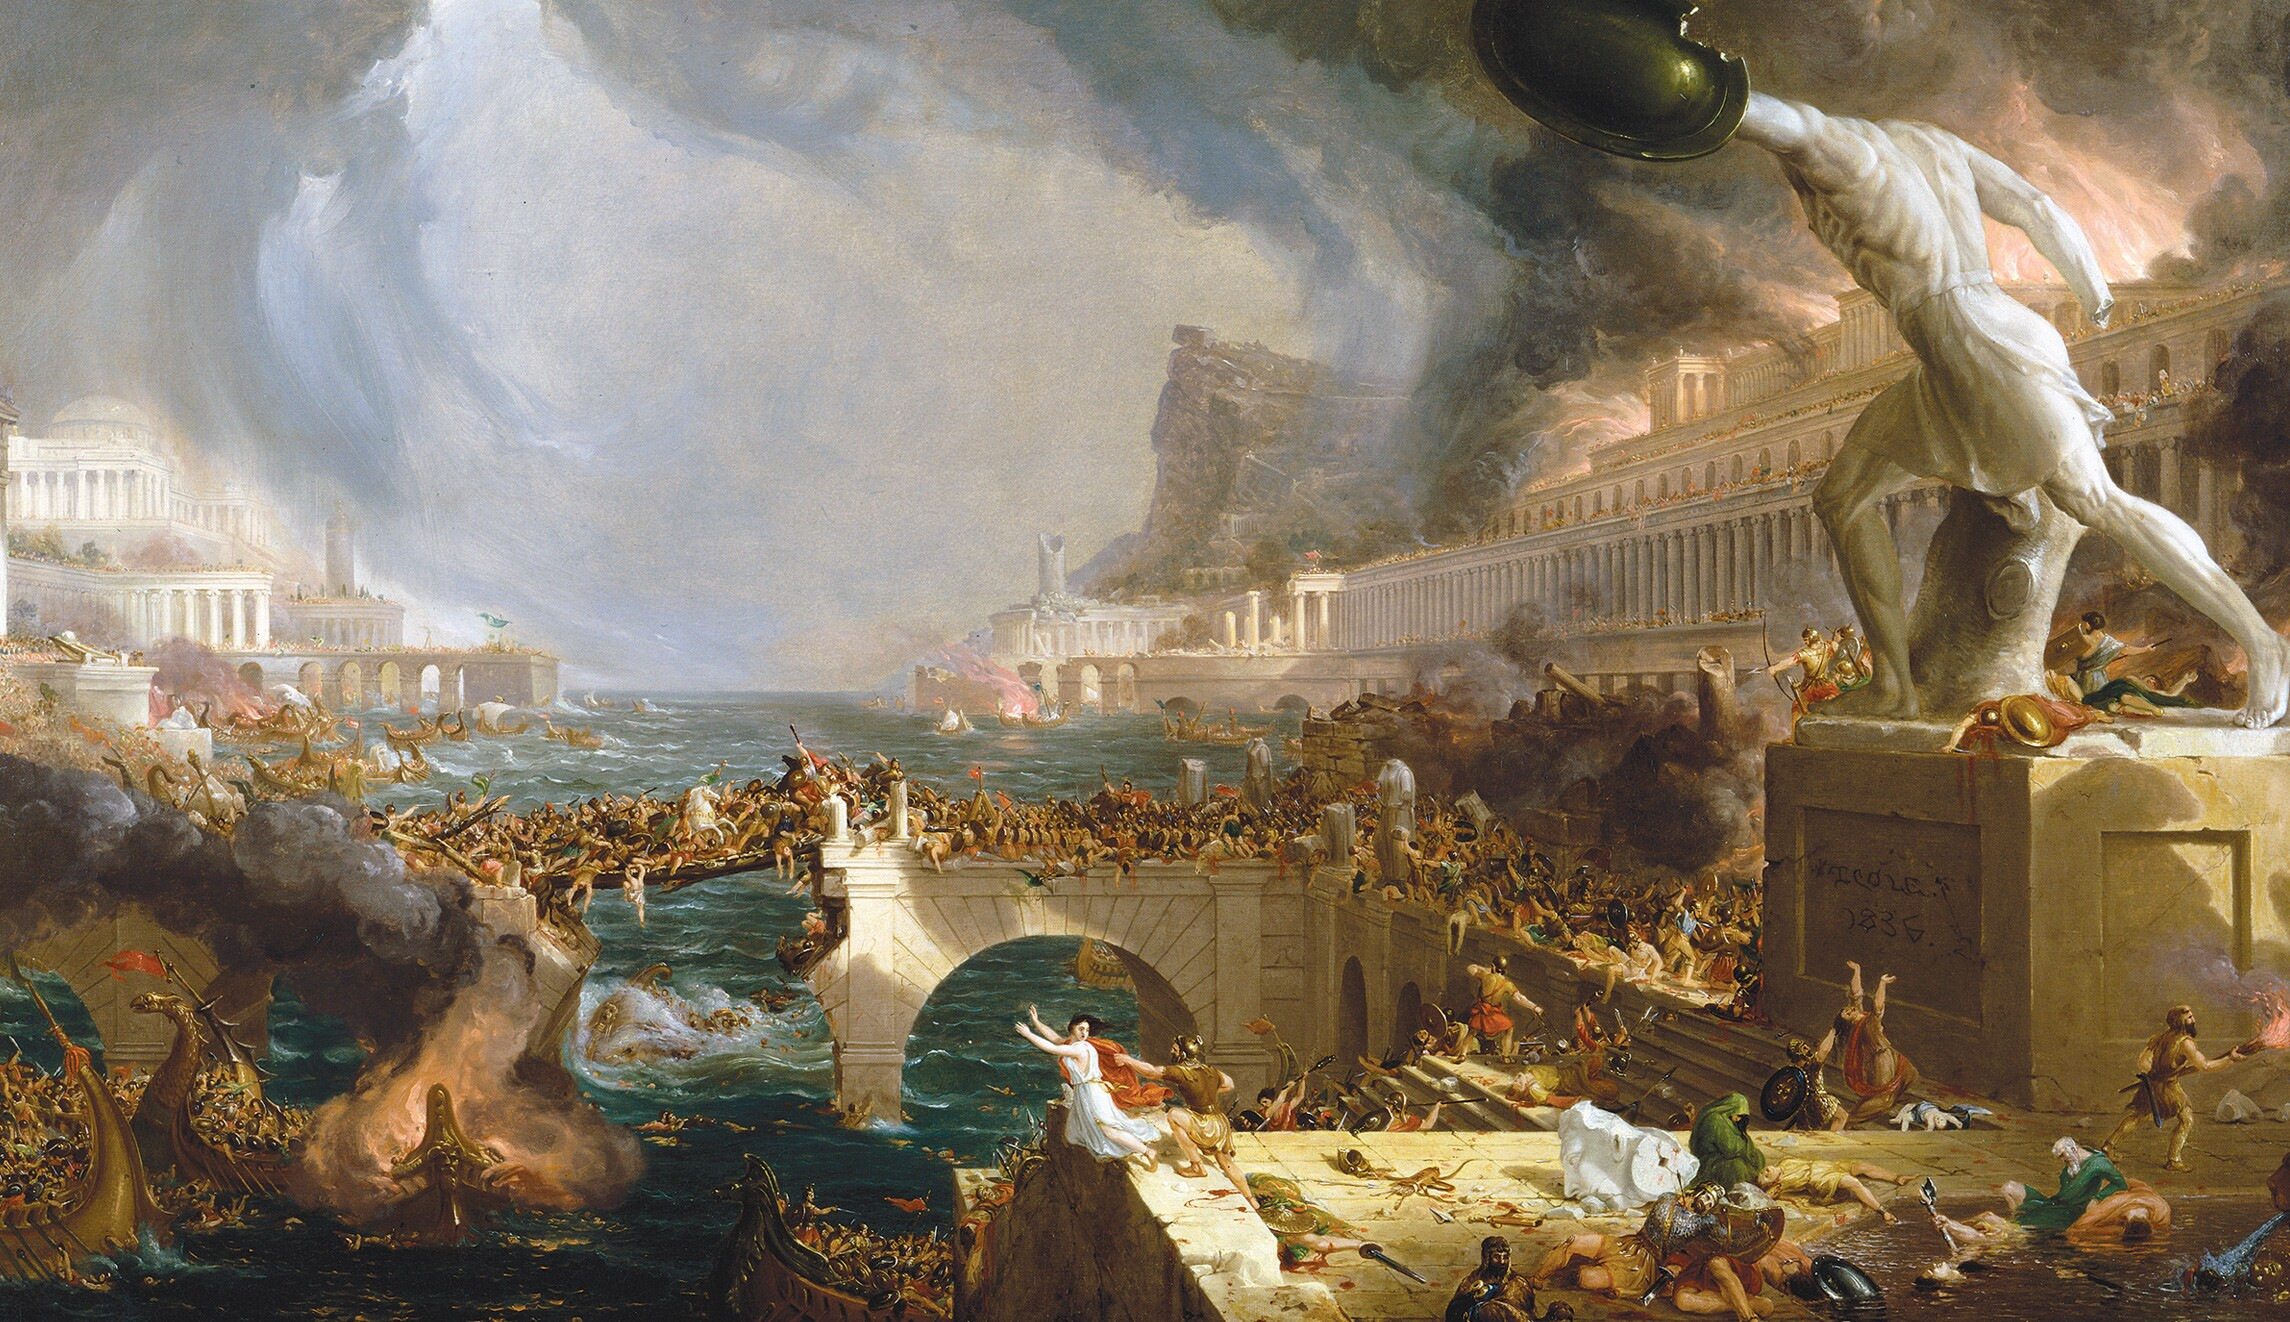 Barbarians at the Gates: Warren Treadgold on the Fall of the Roman Empire